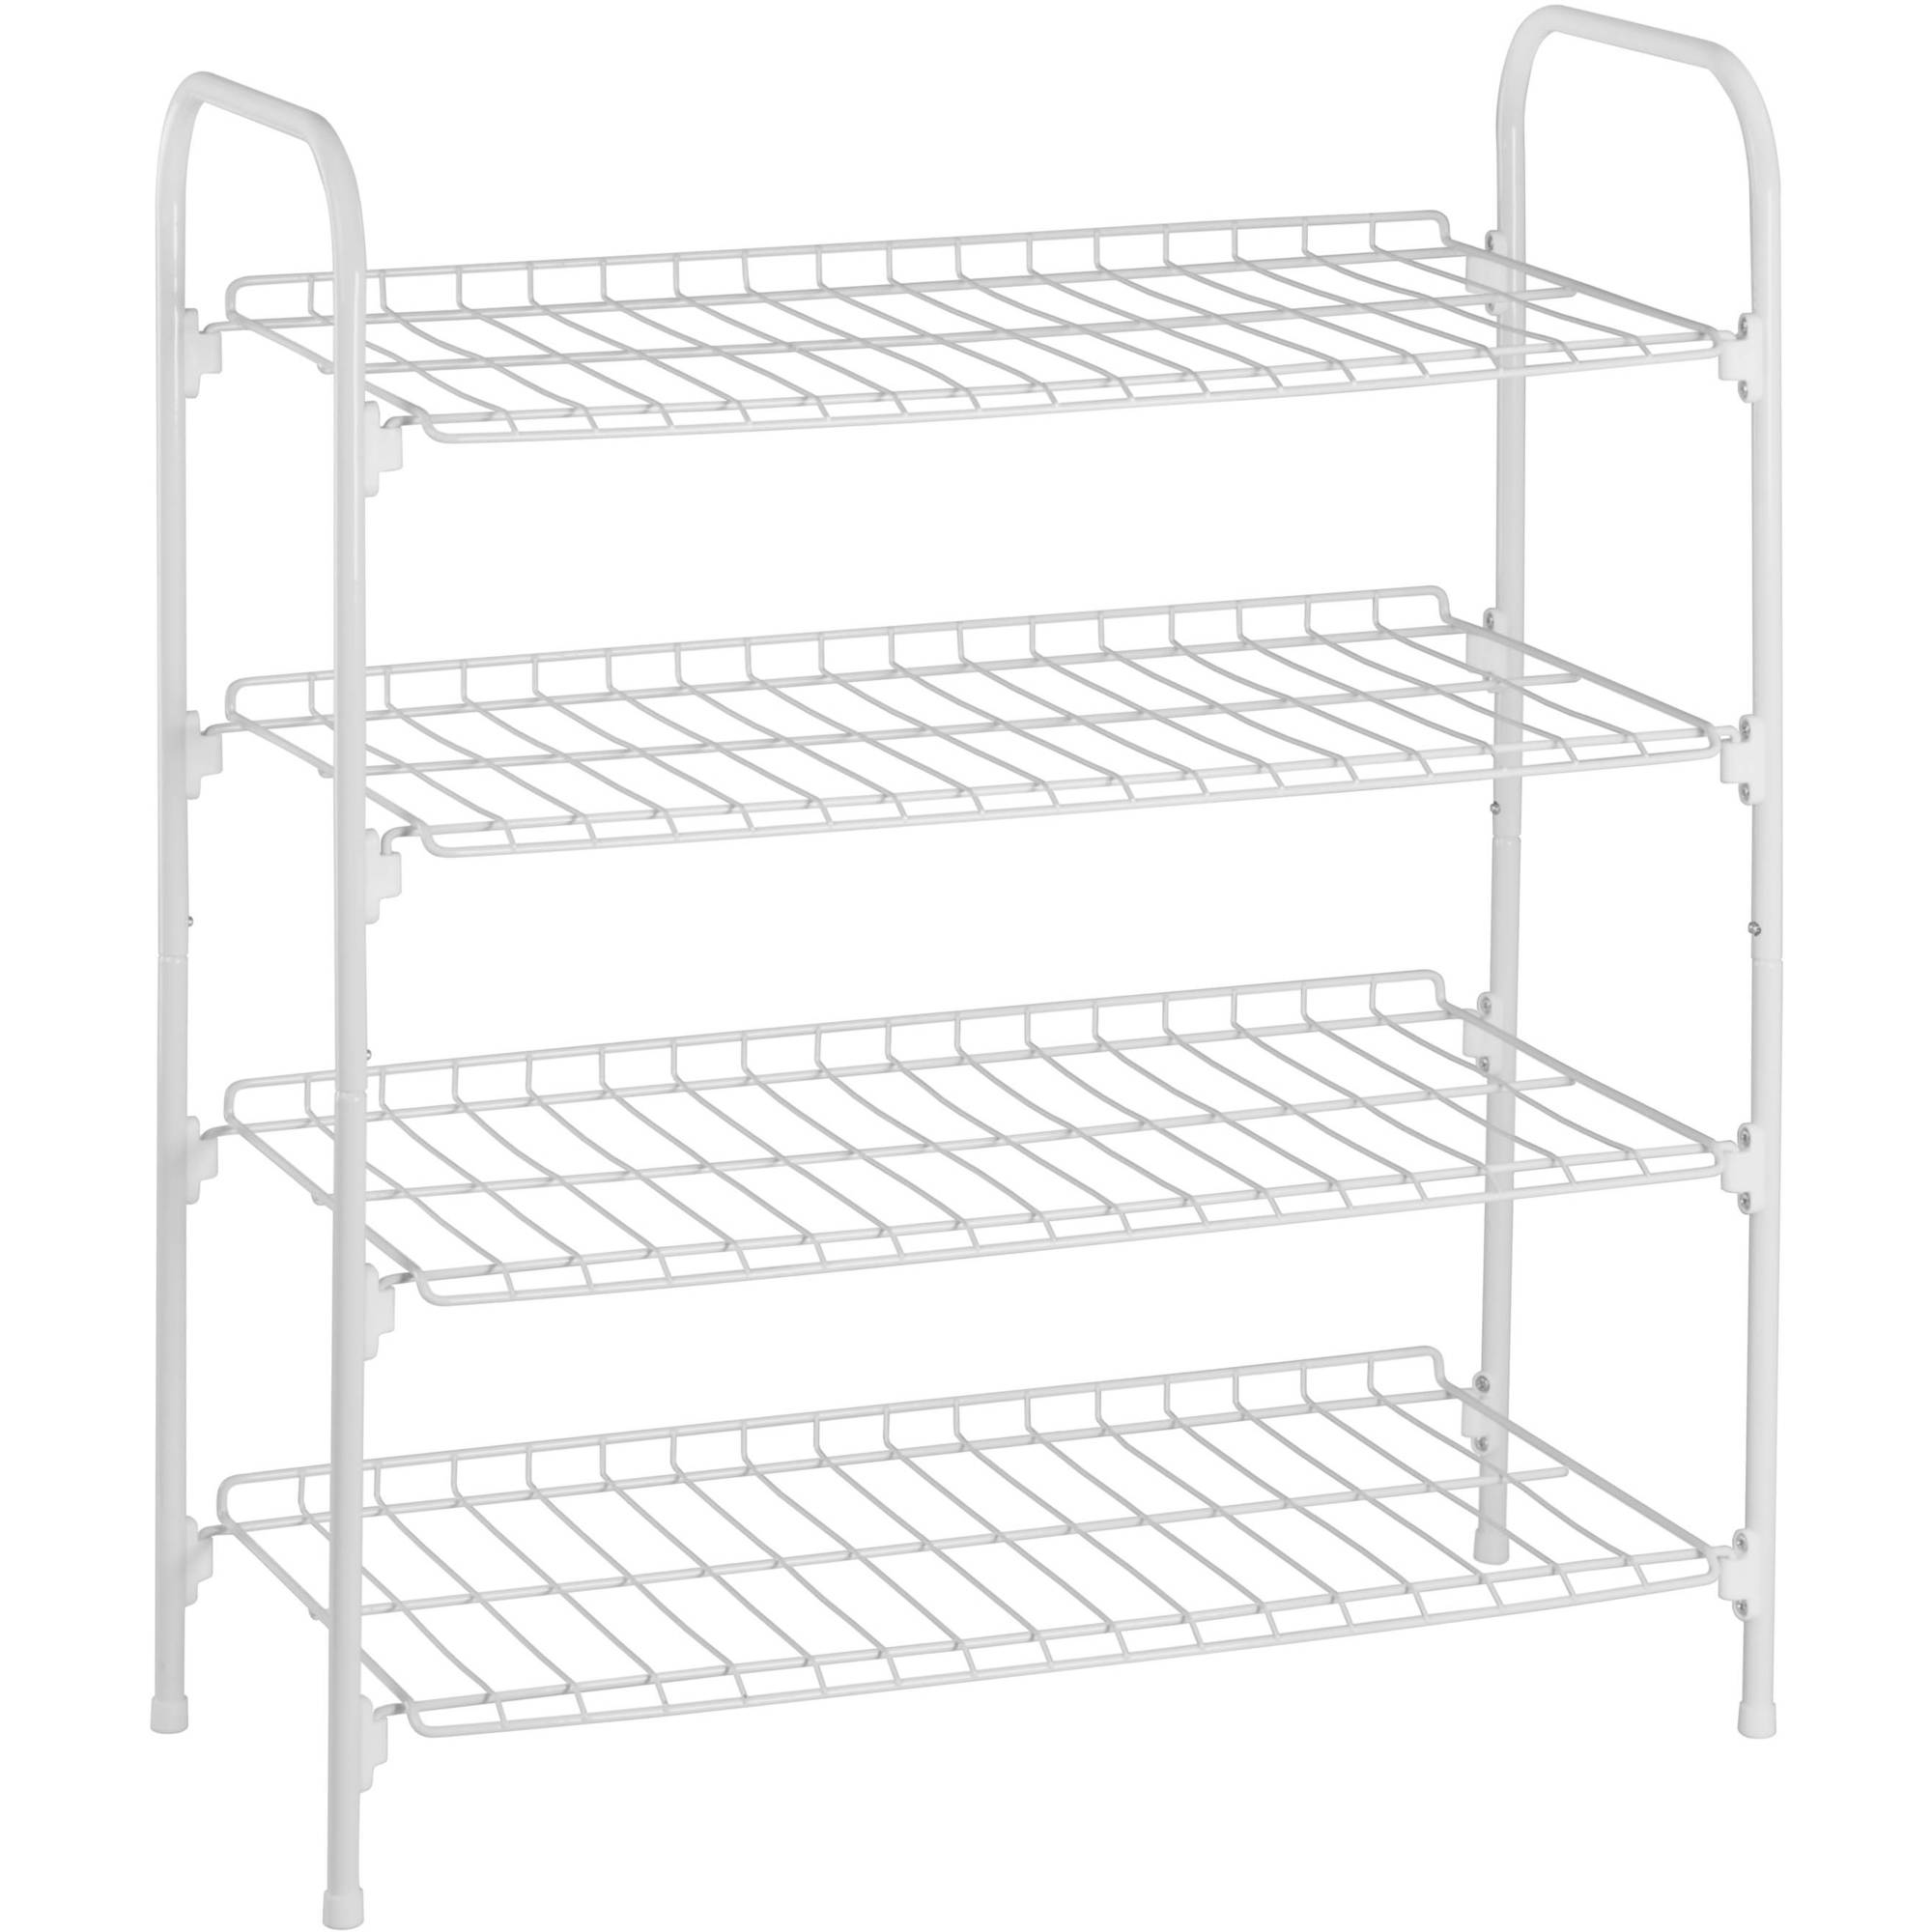 Shoe Rack Accessory Shelf 4 Tier Metal Closet Storage